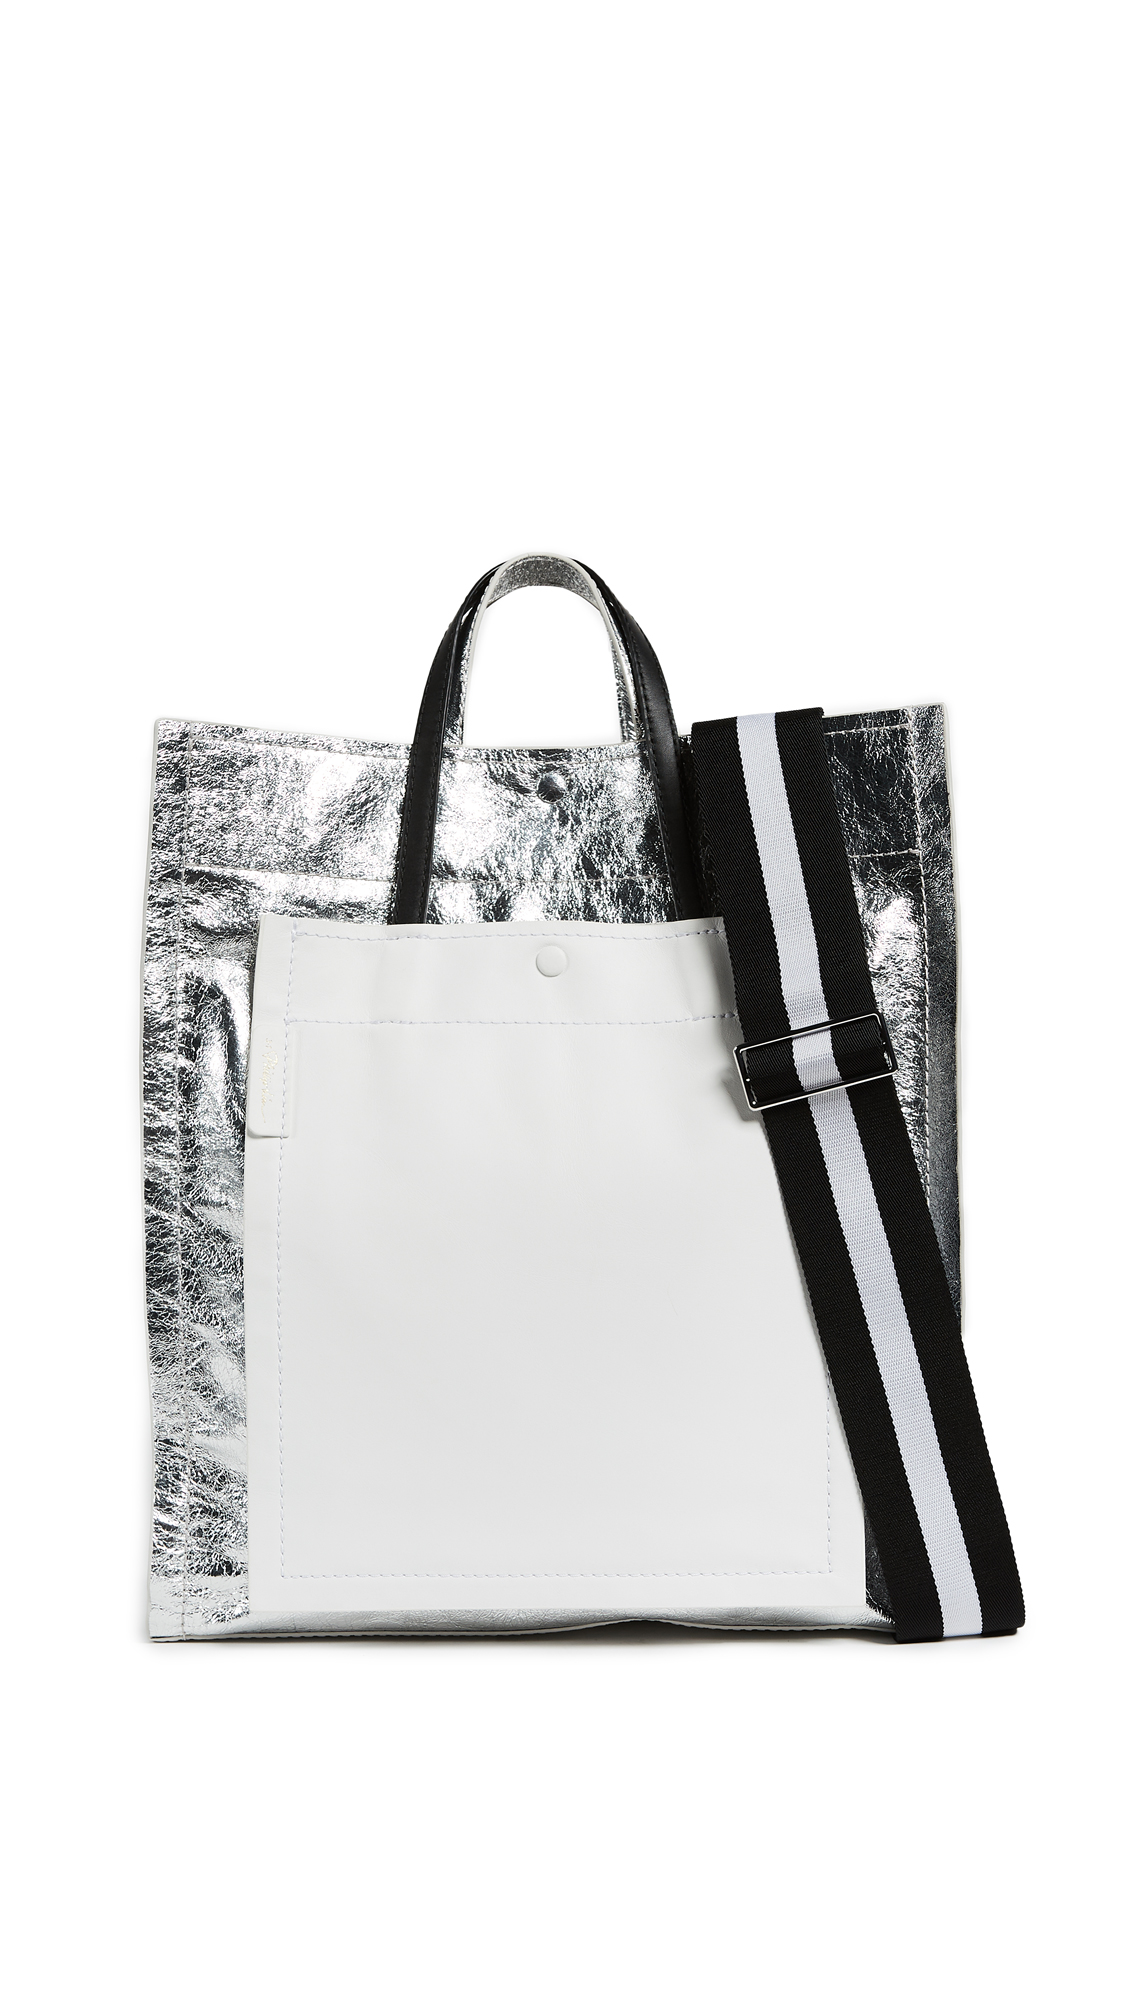 3.1 Phillip Lim Accordion Shopper - Silver